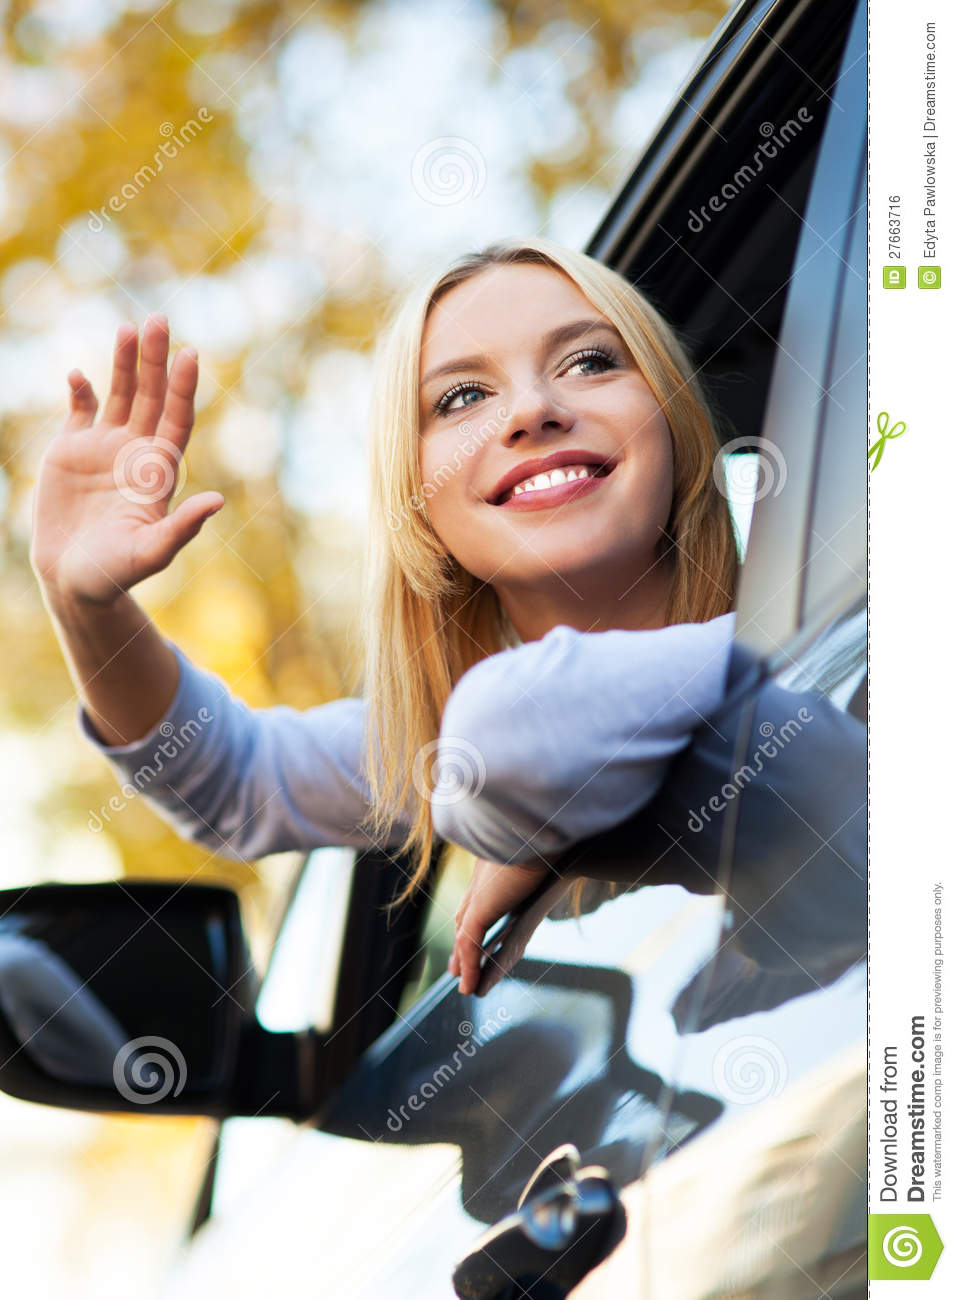 Car Buying App >> Woman Waving From Car Window Royalty Free Stock Image - Image: 27663716